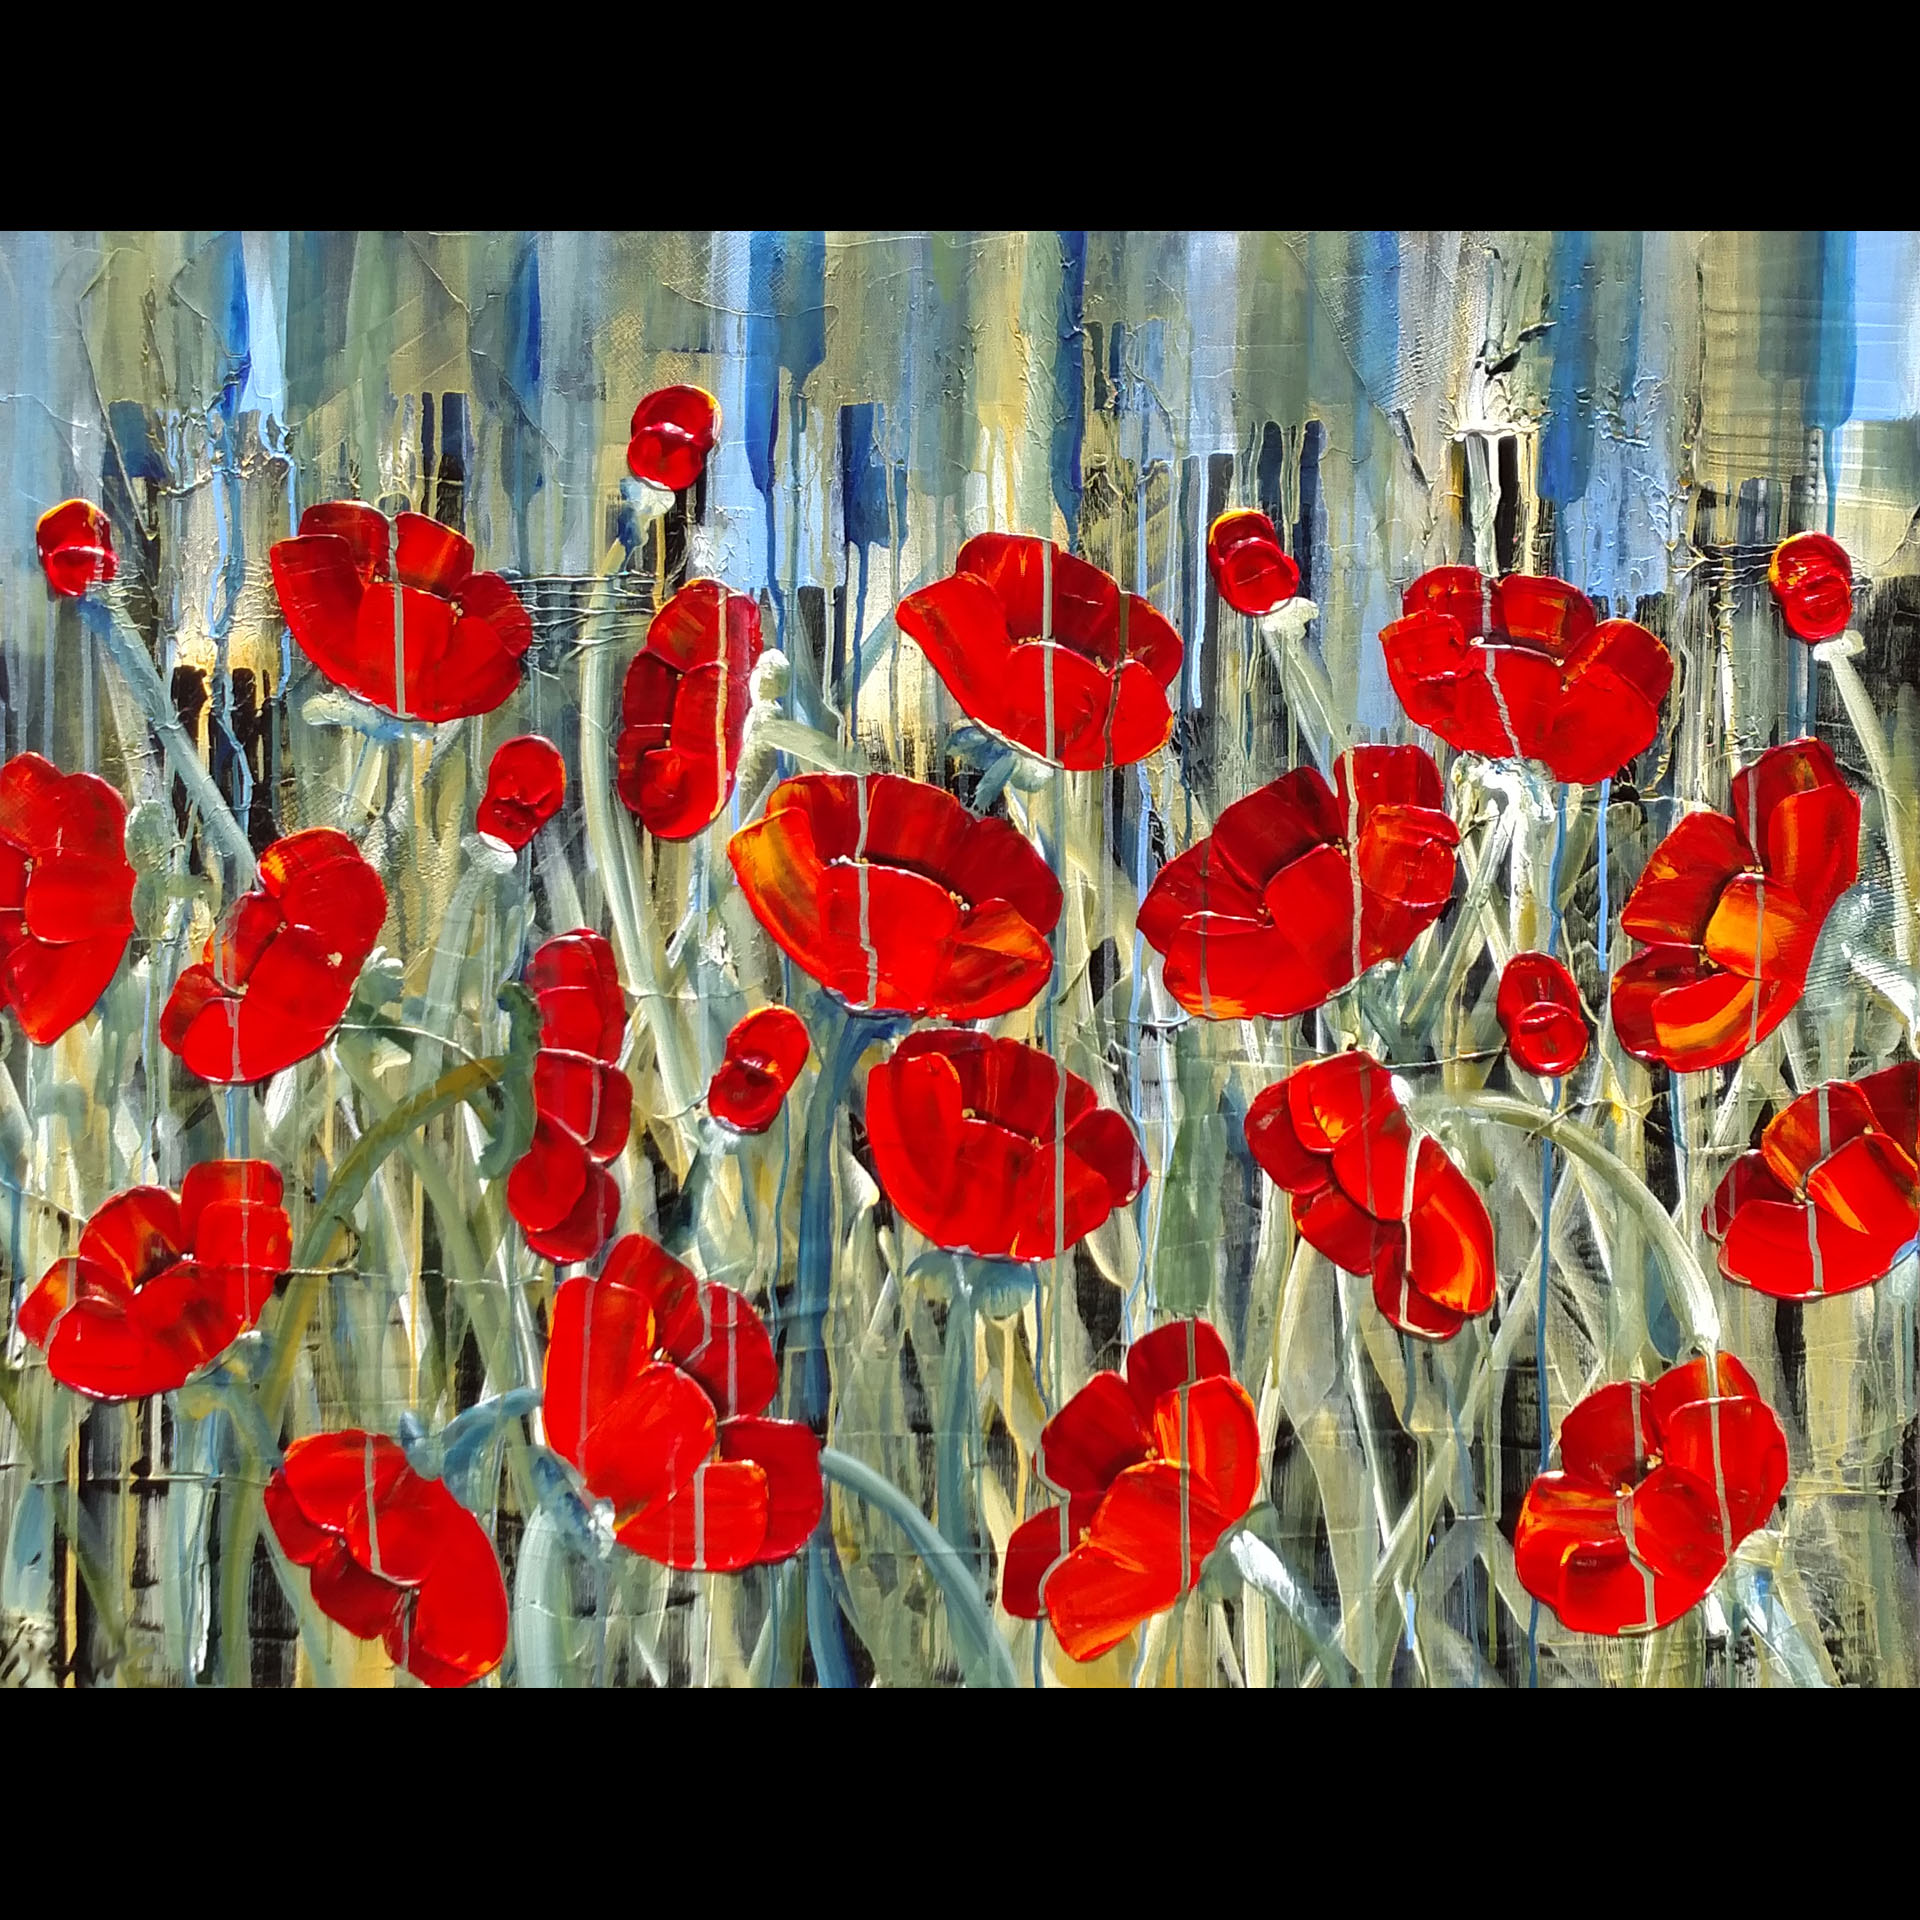 Poppies_in_Blue_Sky.jpg